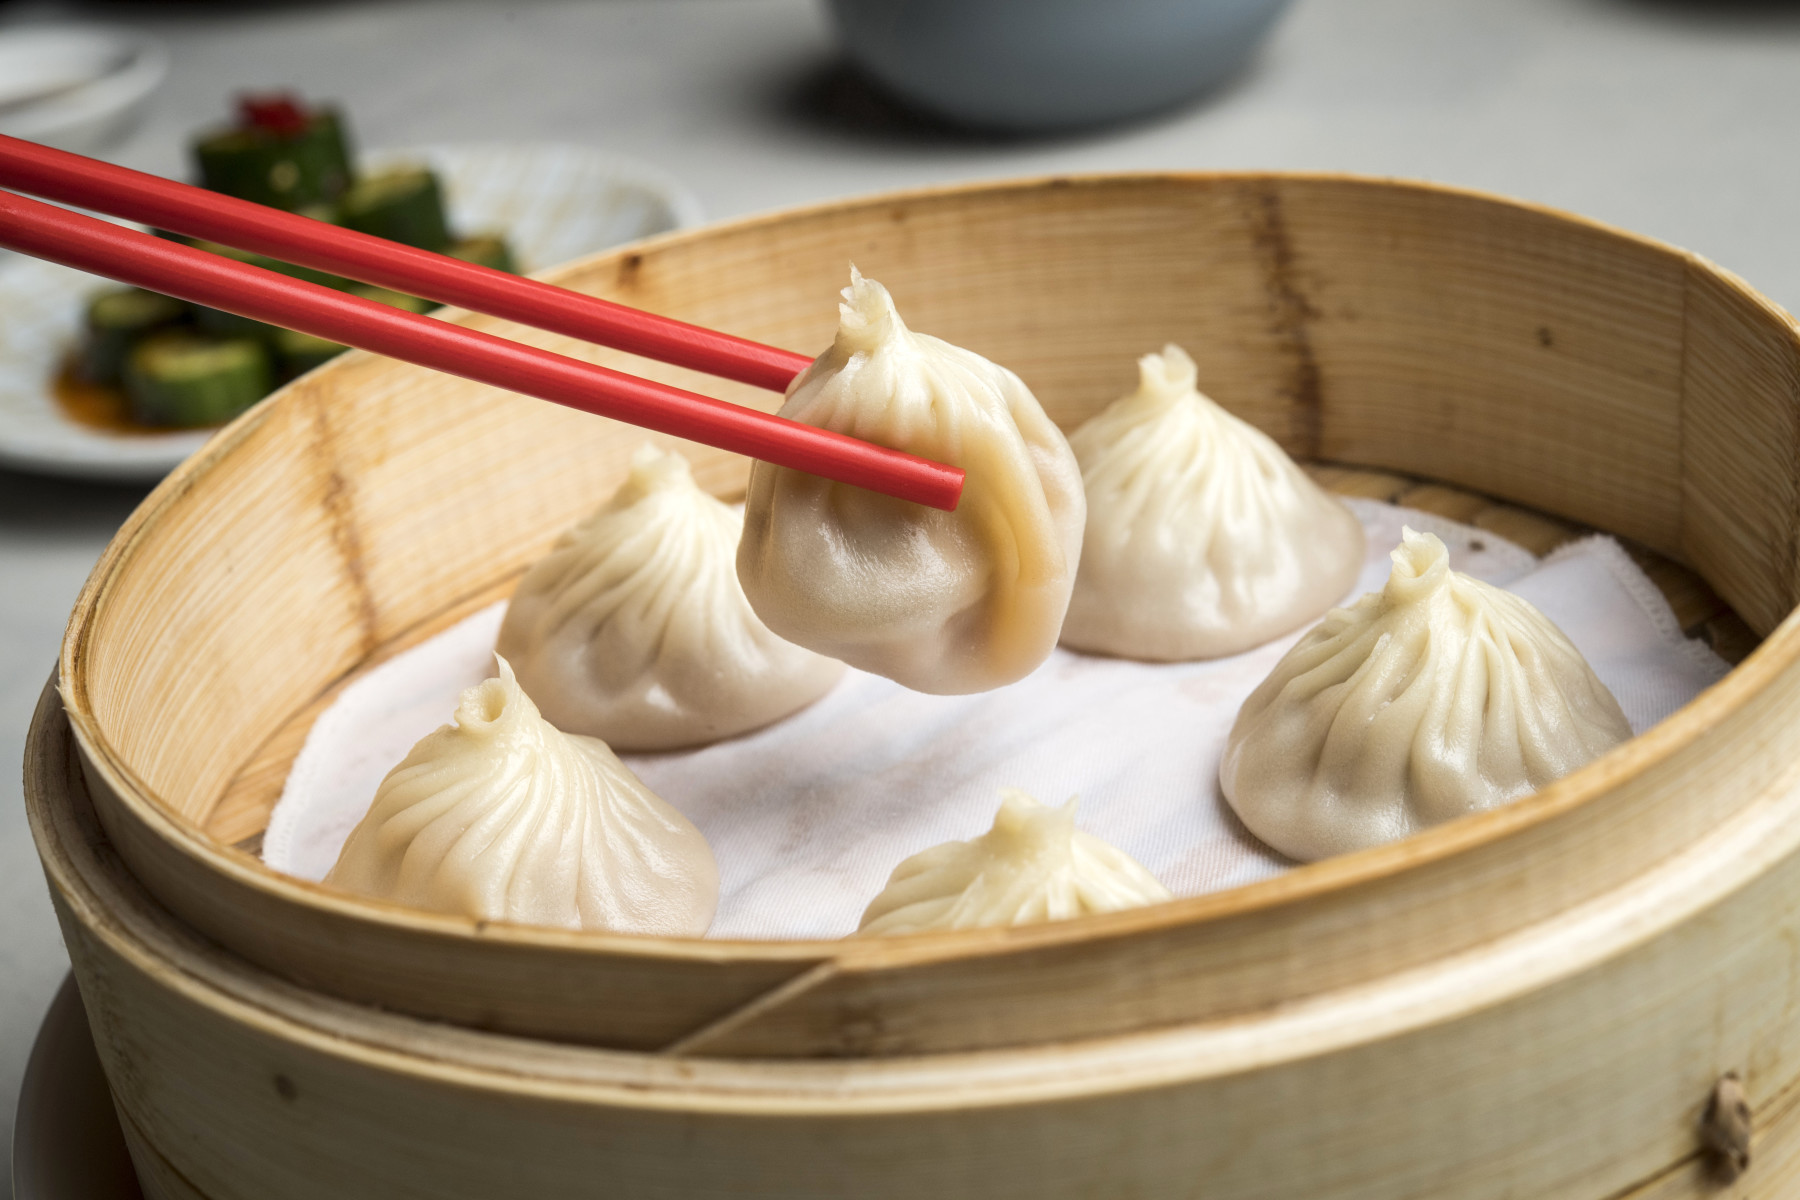 Pinch Chinese -Dumplings - Feast Meets West